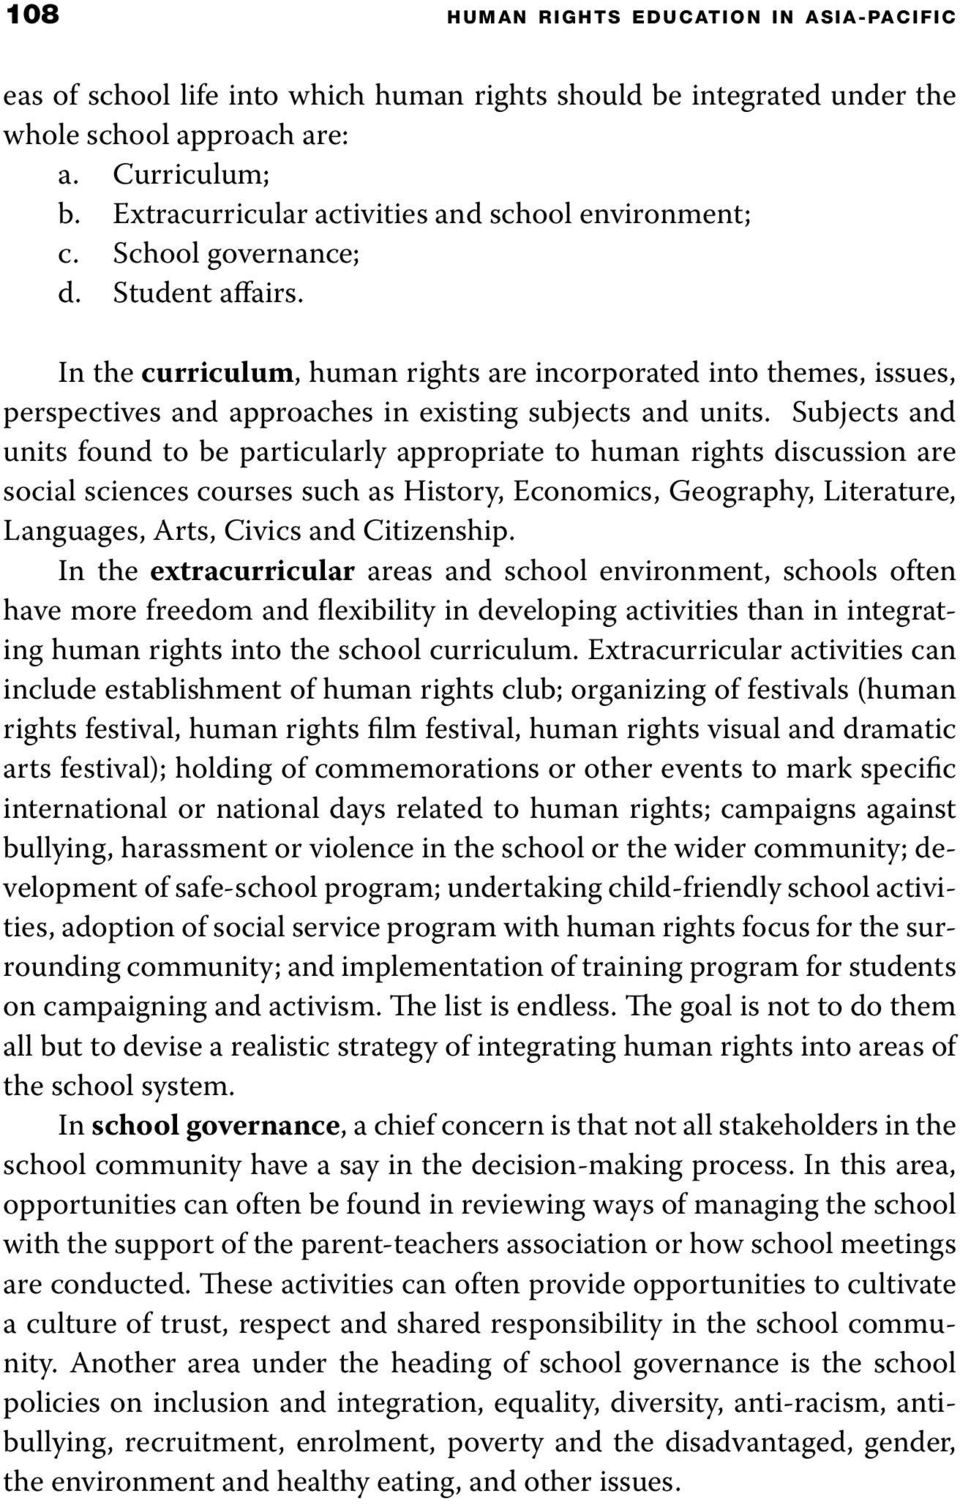 In the curriculum, human rights are incorporated into themes, issues, perspectives and approaches in existing subjects and units.